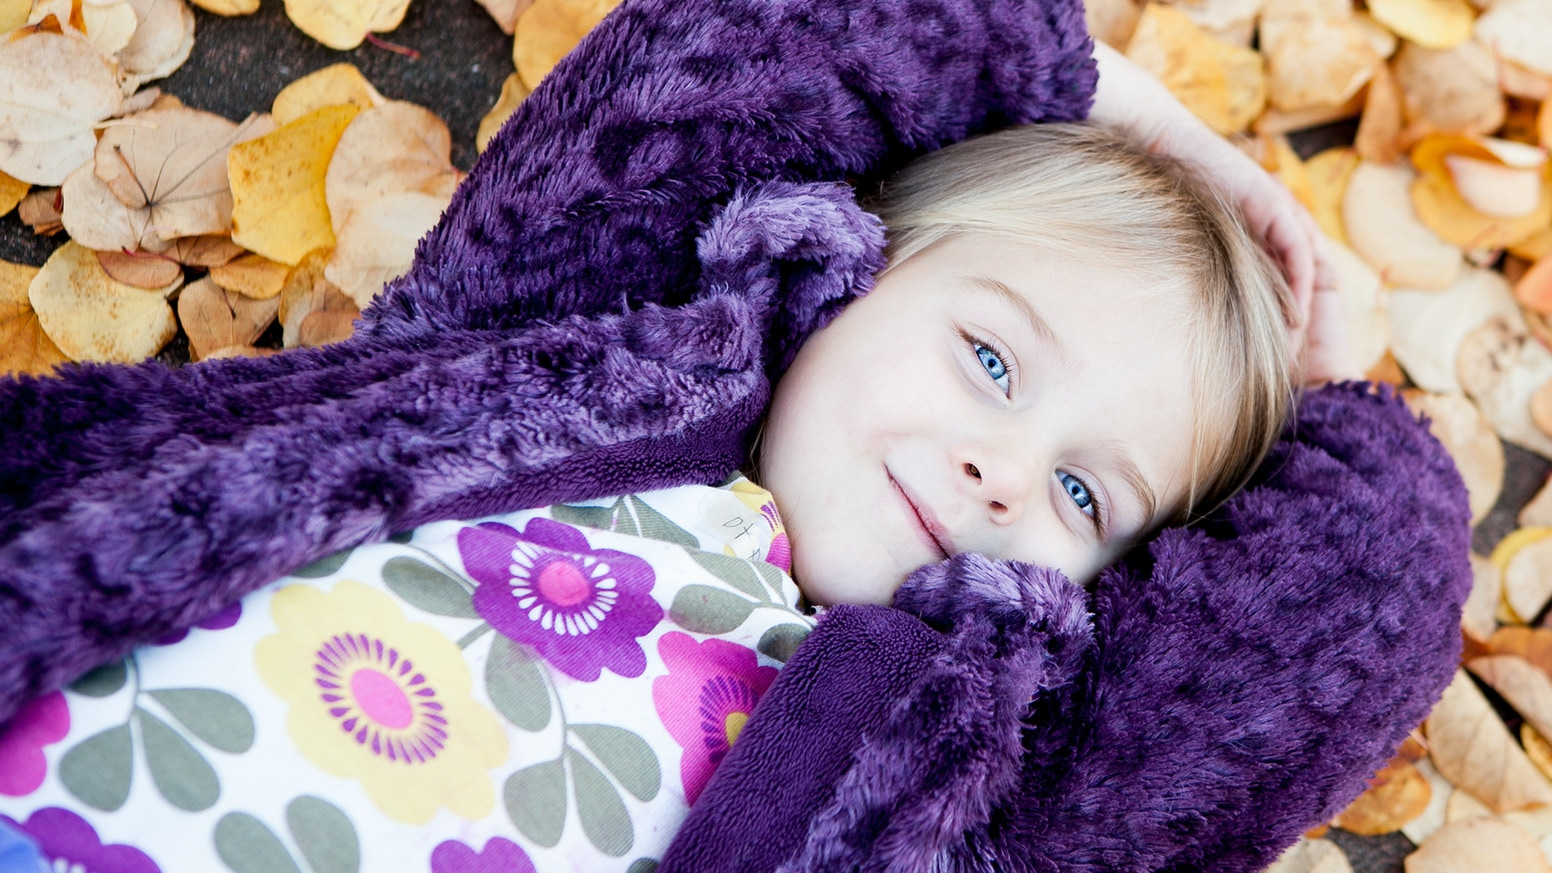 How To Photograph Your Child - 12 Step-By-Step Guides to Capturing Your Child Like A Pro